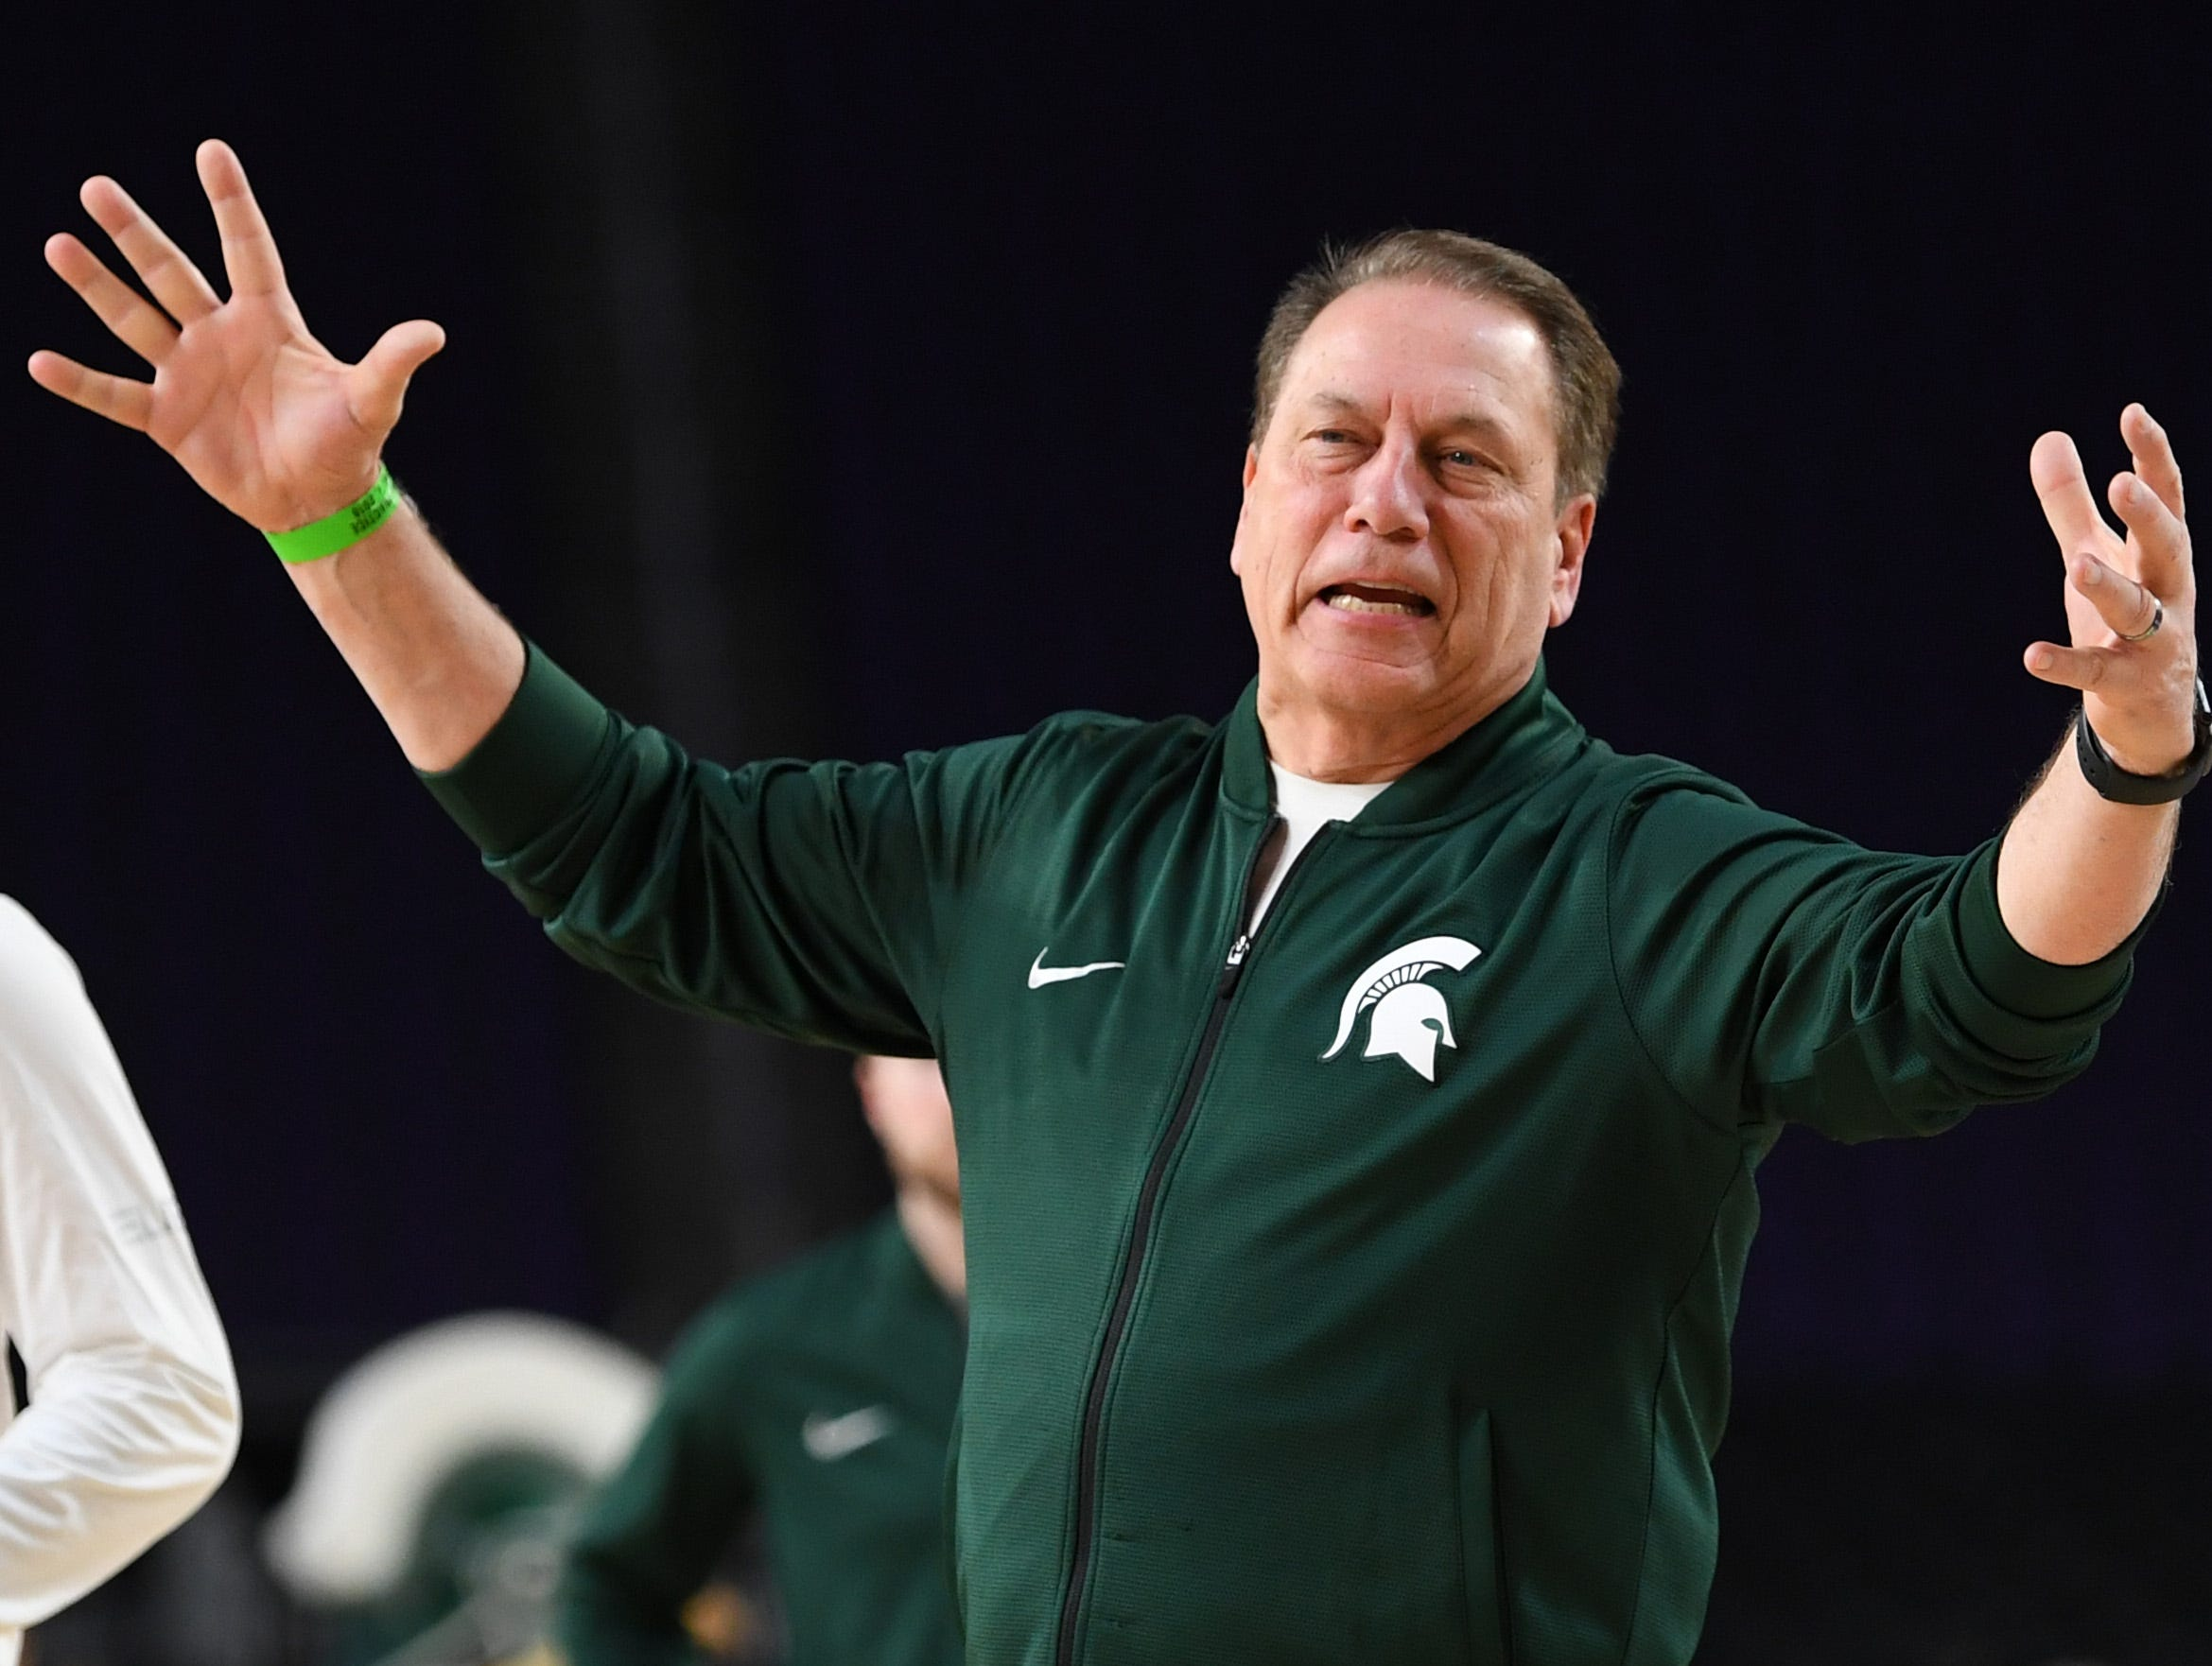 Apr 5, 2019; Minneapolis, MN, USA; Michigan State Spartans head coach Tom Izzo during practice for the 2019 men's Final Four at US Bank Stadium. Mandatory Credit: Bob Donnan-USA TODAY Sports